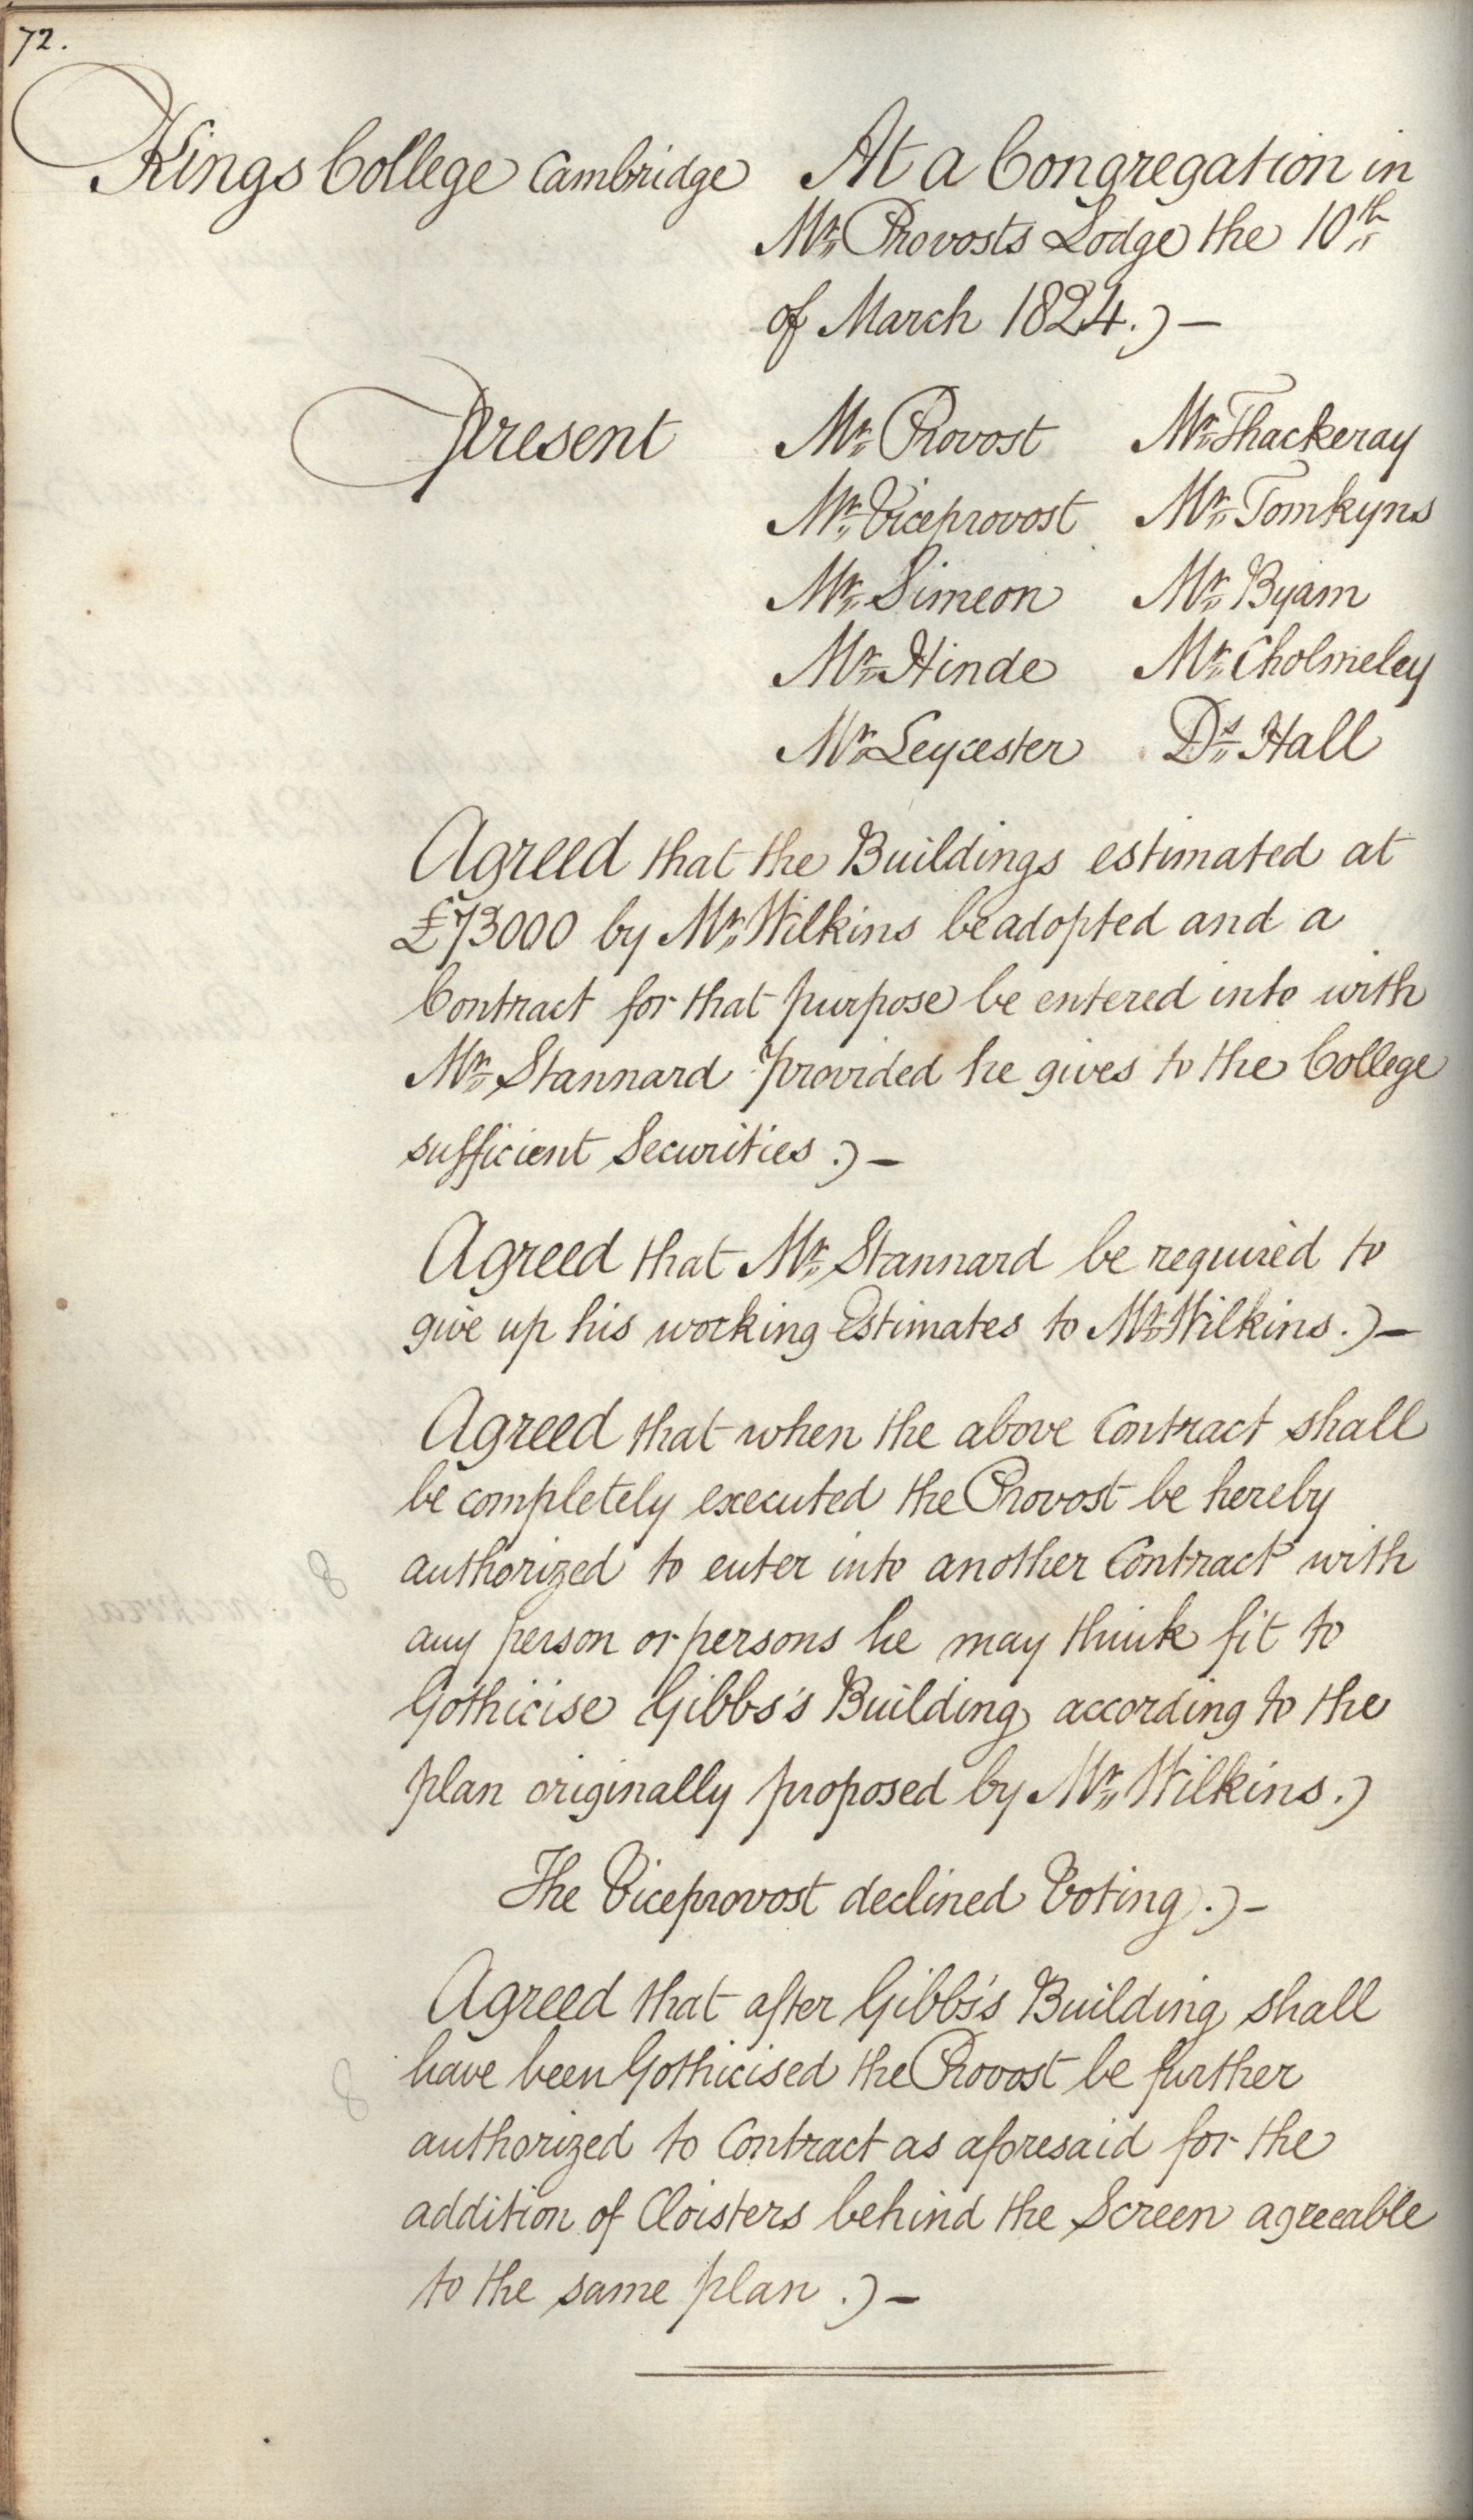 Agreement to Gothicise the Gibbs building (not carried out), Congregation minutes, 10 March 1824. [KCGB/4/1/1/4]